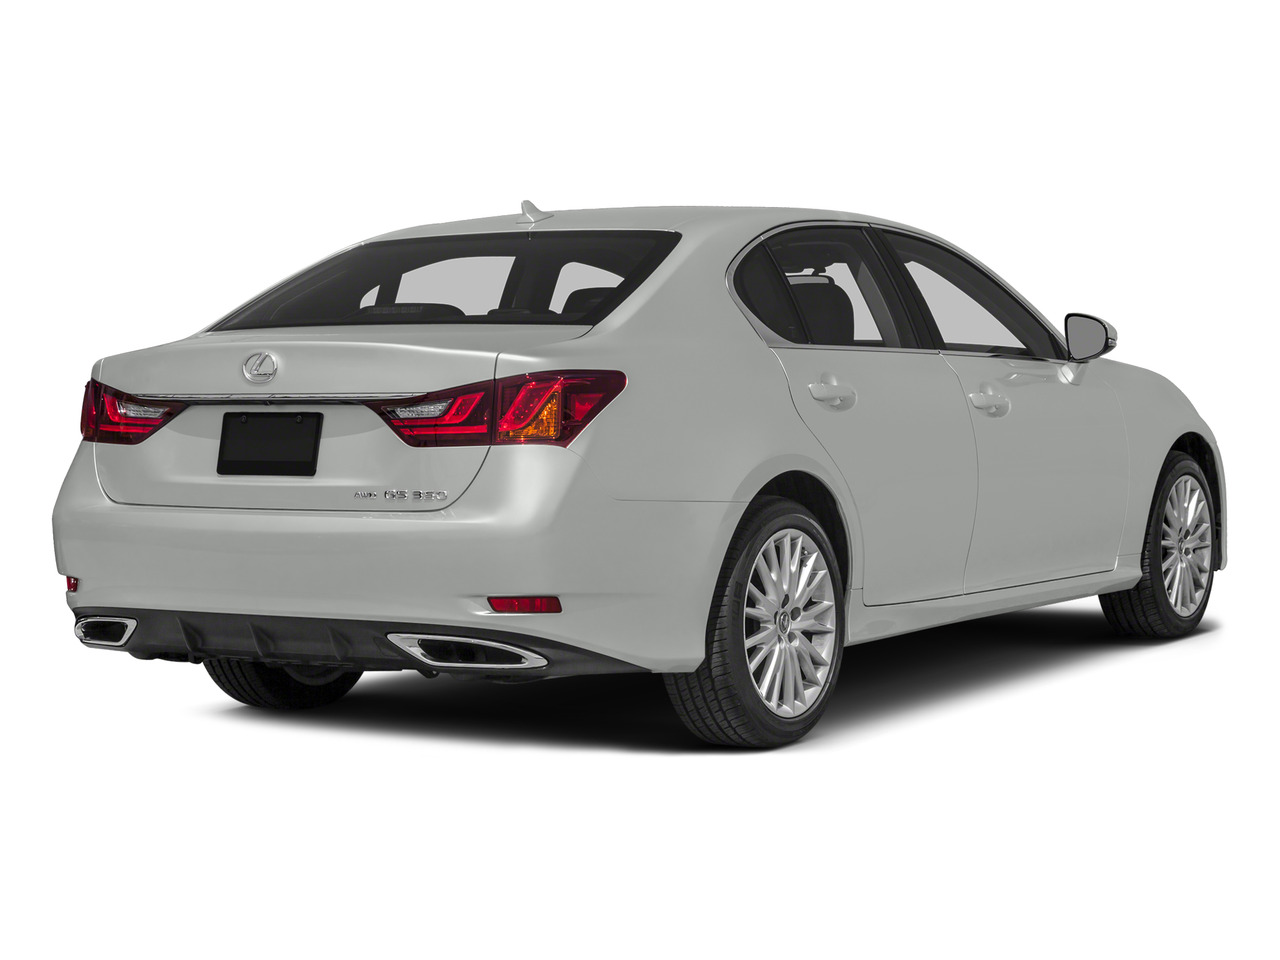 2015 Lexus GS 350 4DR SDN RWD Fayetteville NC